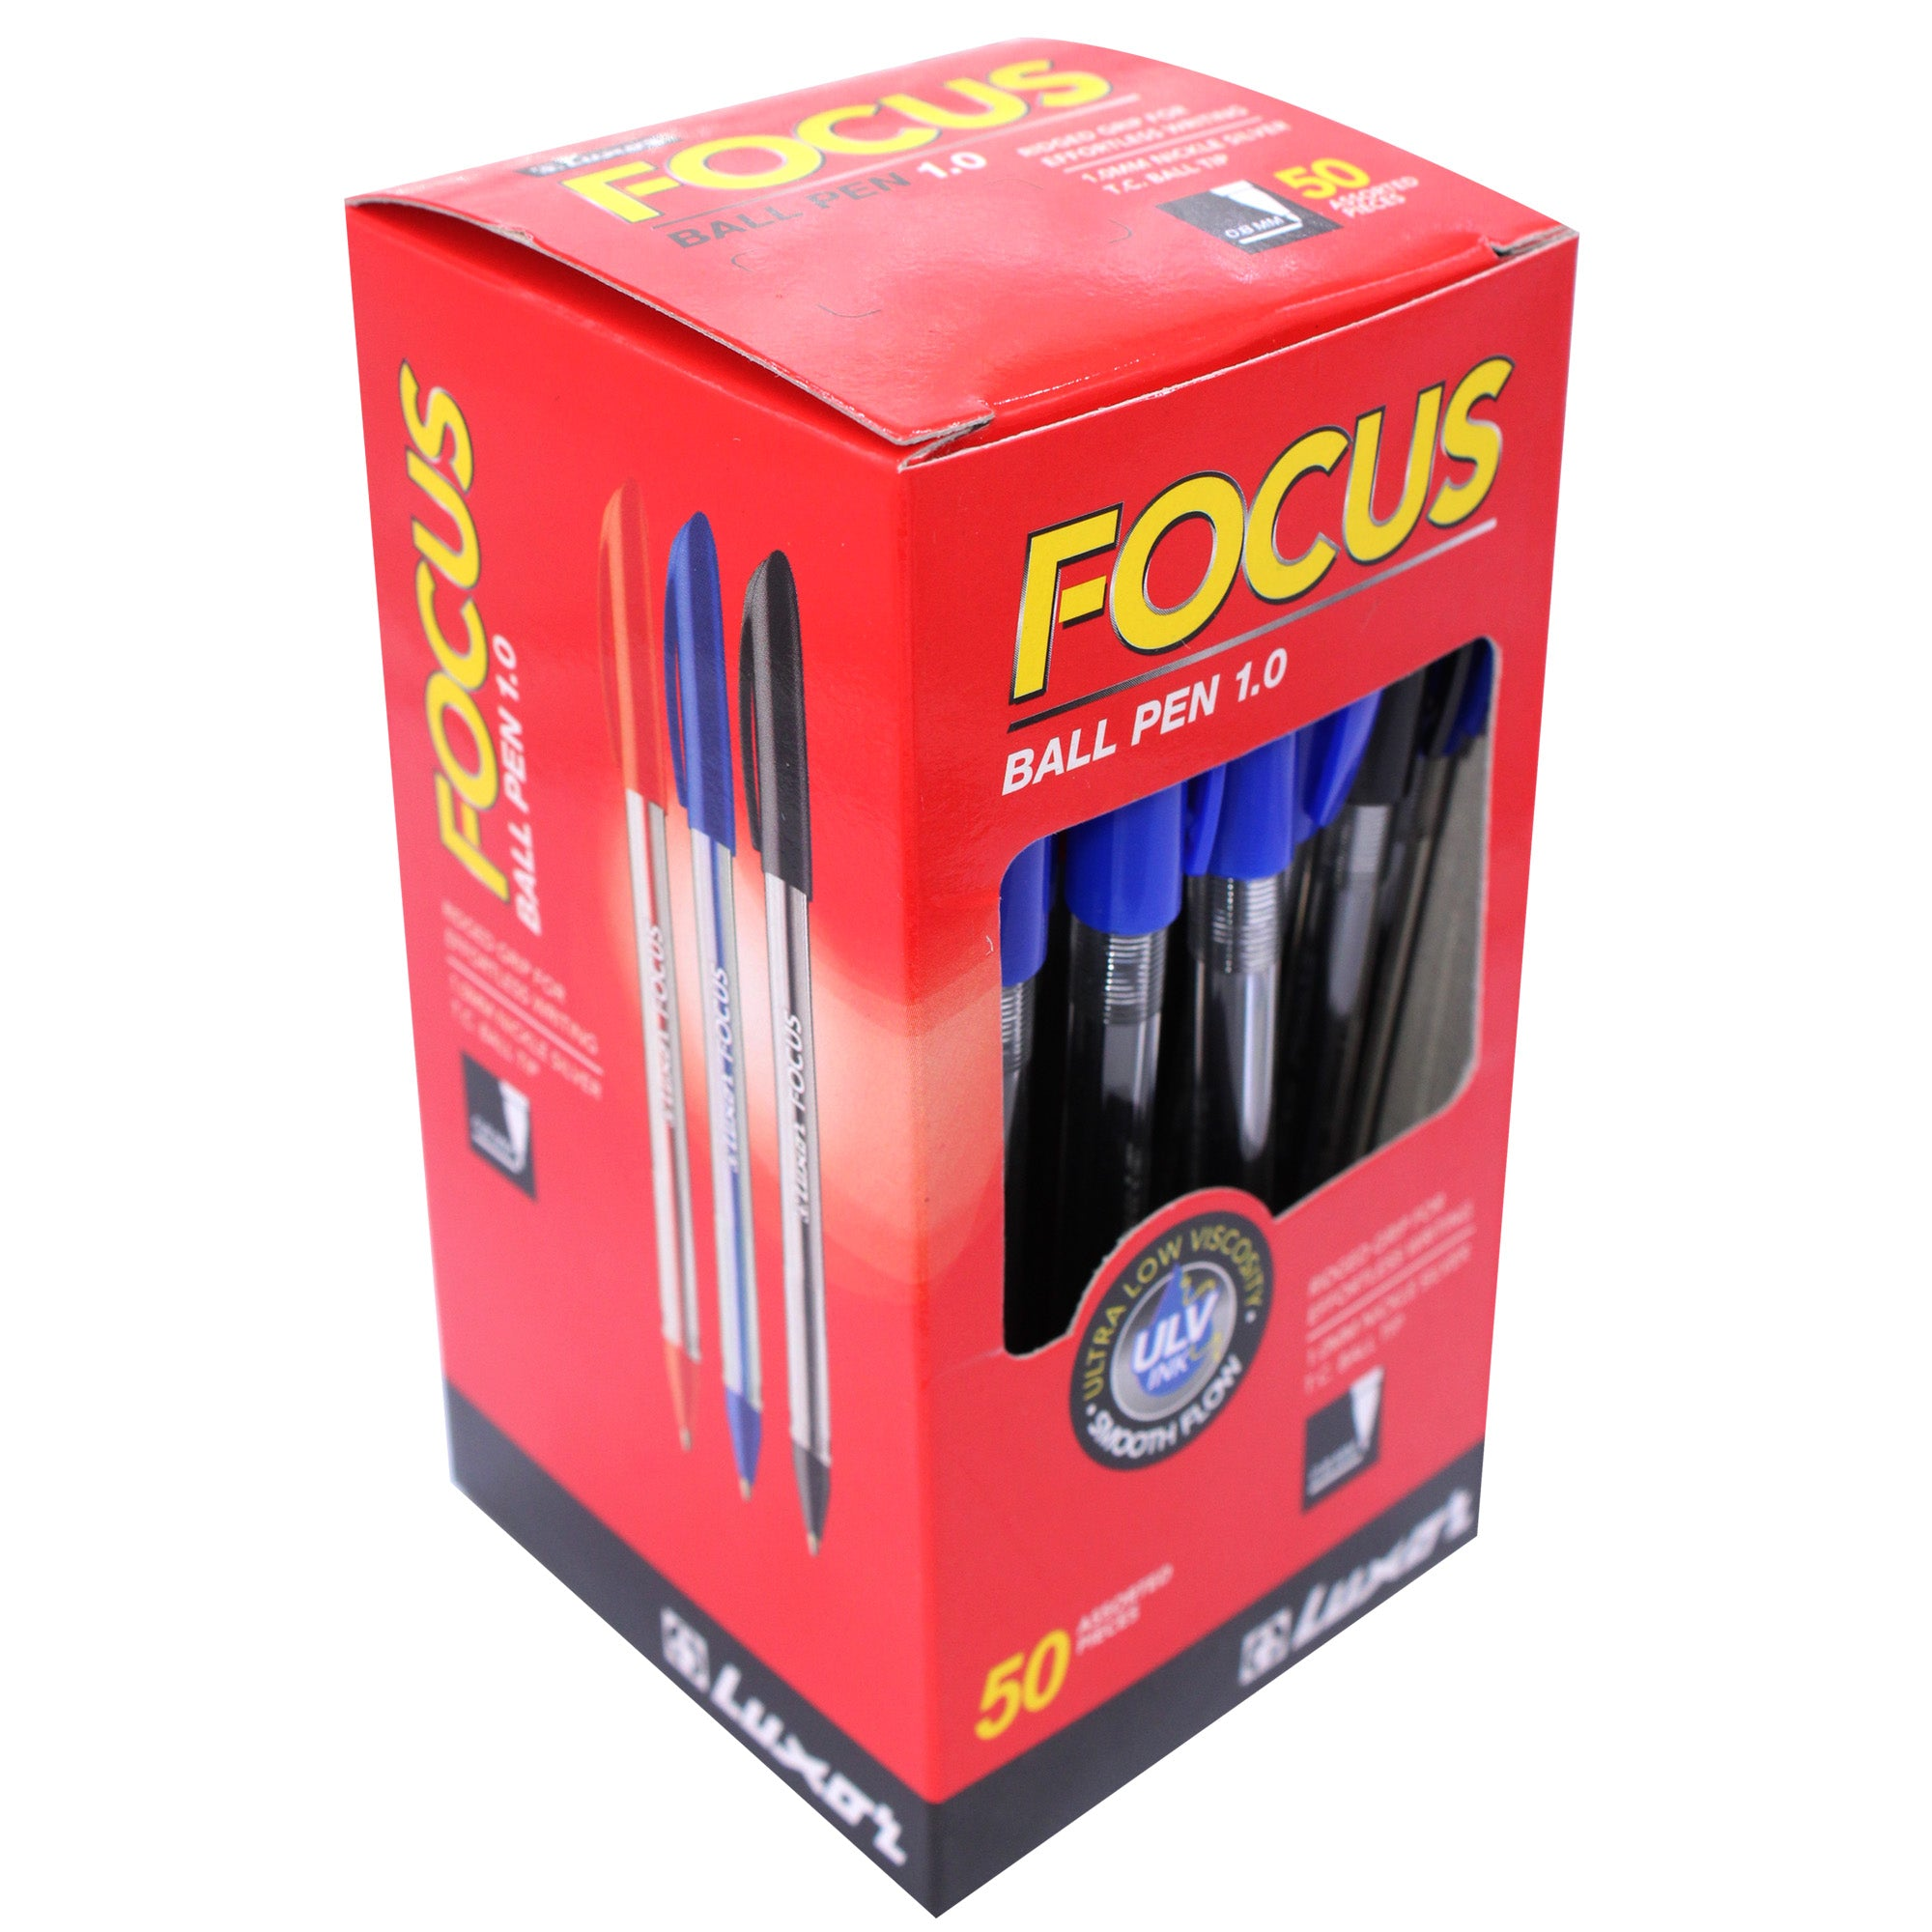 50-PK BOX, FOCUS BALL PENS, ASSORTED COLORS - RED, BLUE, AND BLACK.